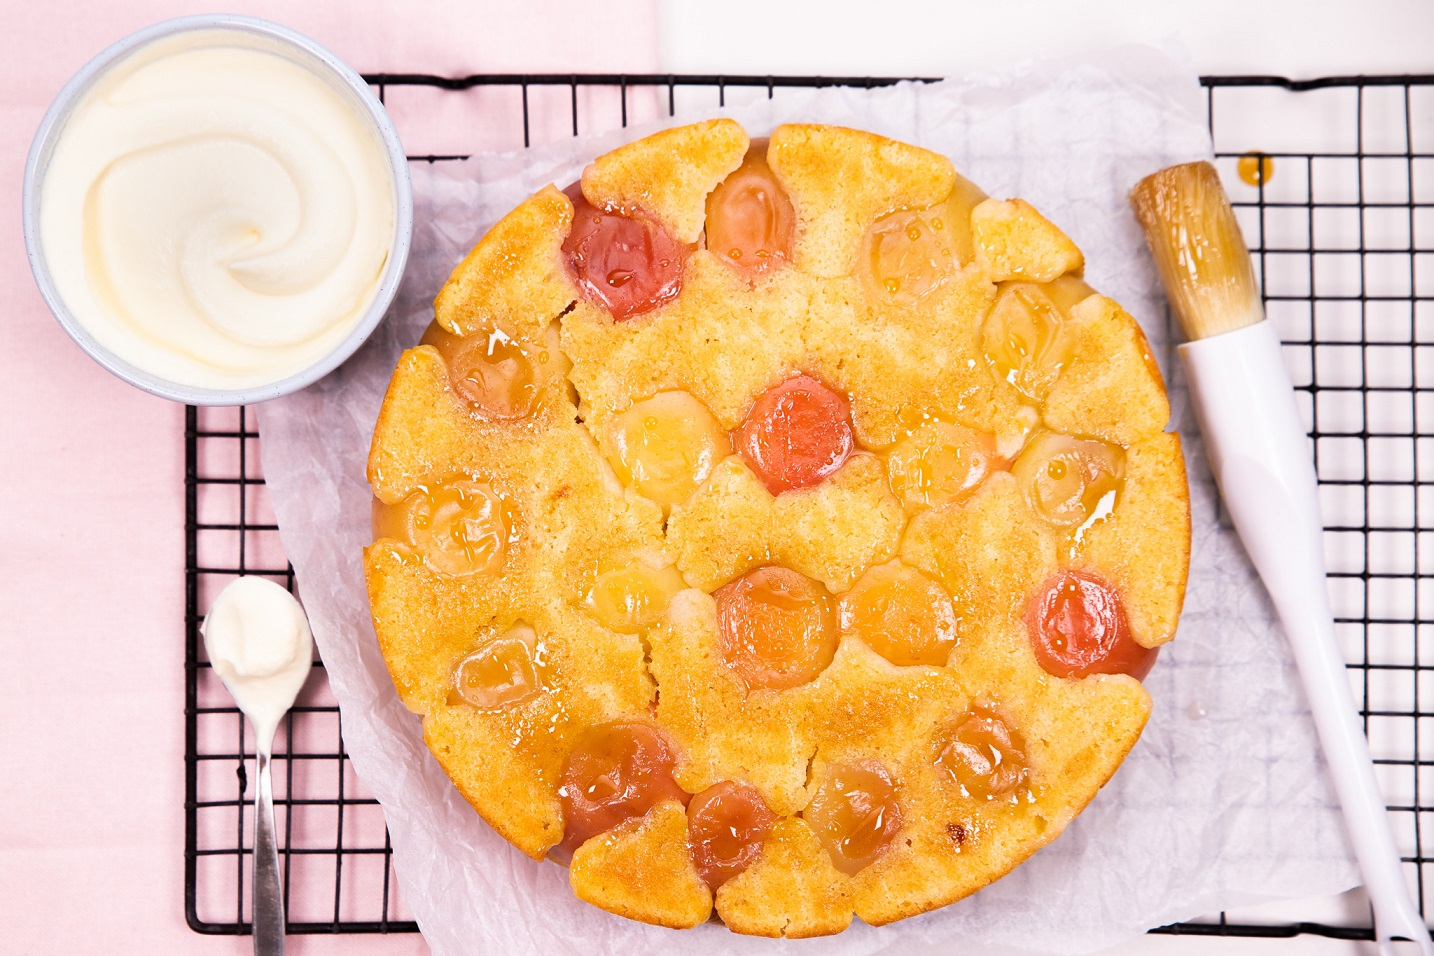 A round fruit embedded cake and a pastry brush, teaspoon,a small pot of cream on a wire rack.